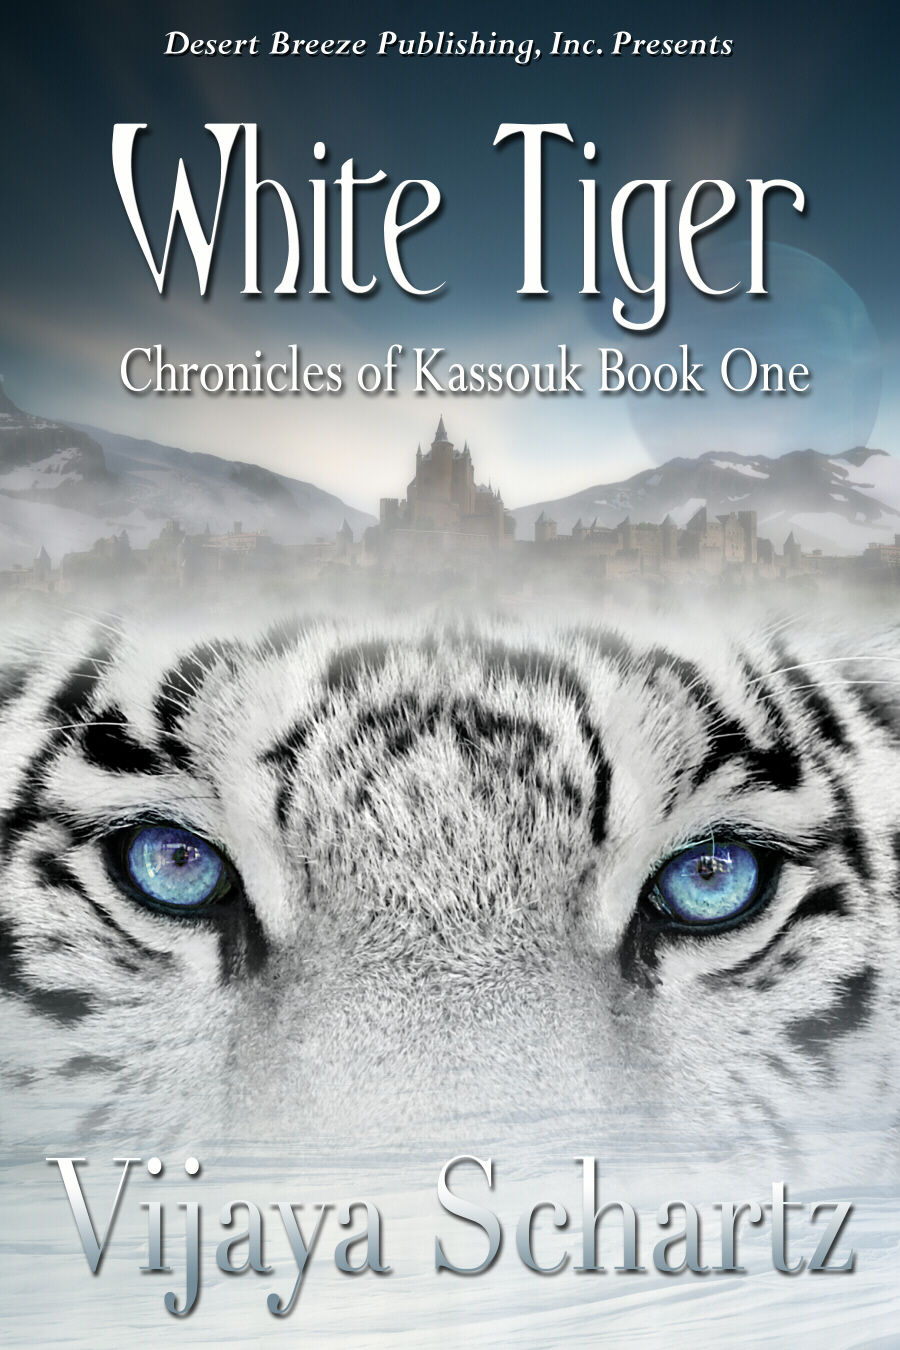 Find White Tiger here